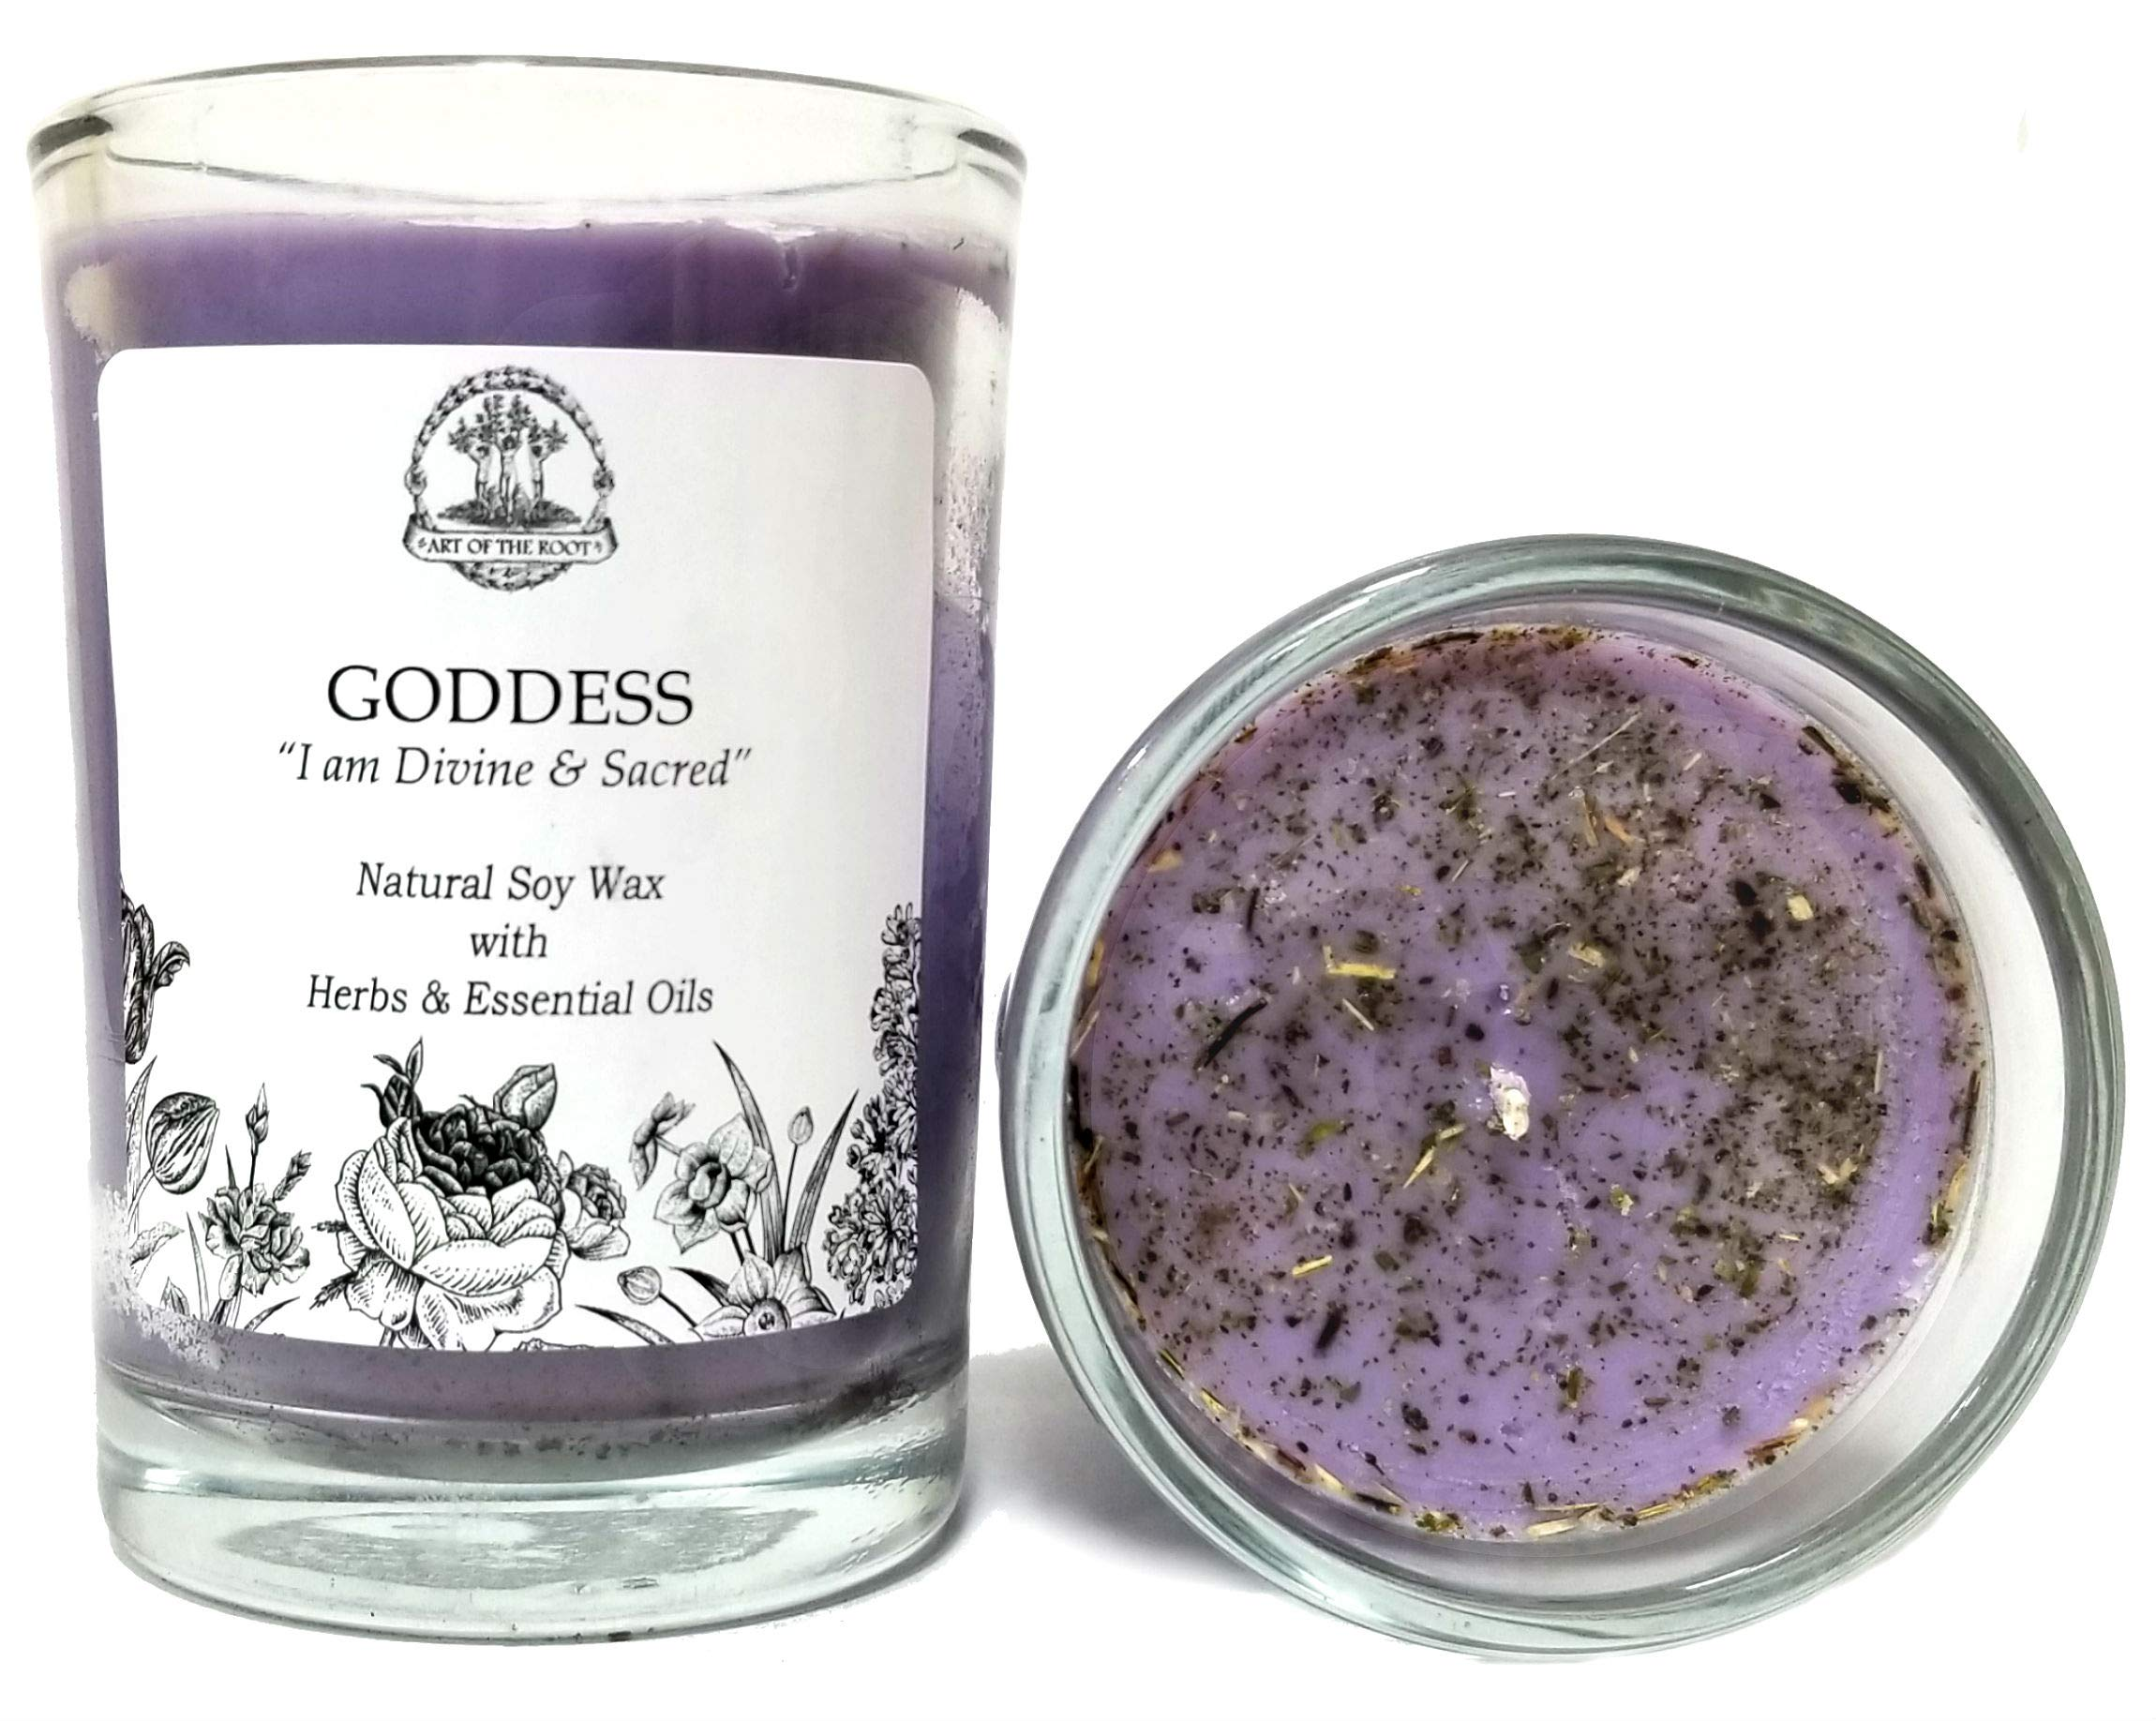 Confidence Charisma Empowerment /& Self-Esteem for Wiccan Pagan /& Magic Spells /& Rituals Art of the Root Beauty Affirmation Candle: 8 oz Natural Soy with Herbs /& Essential Oils for Radiance